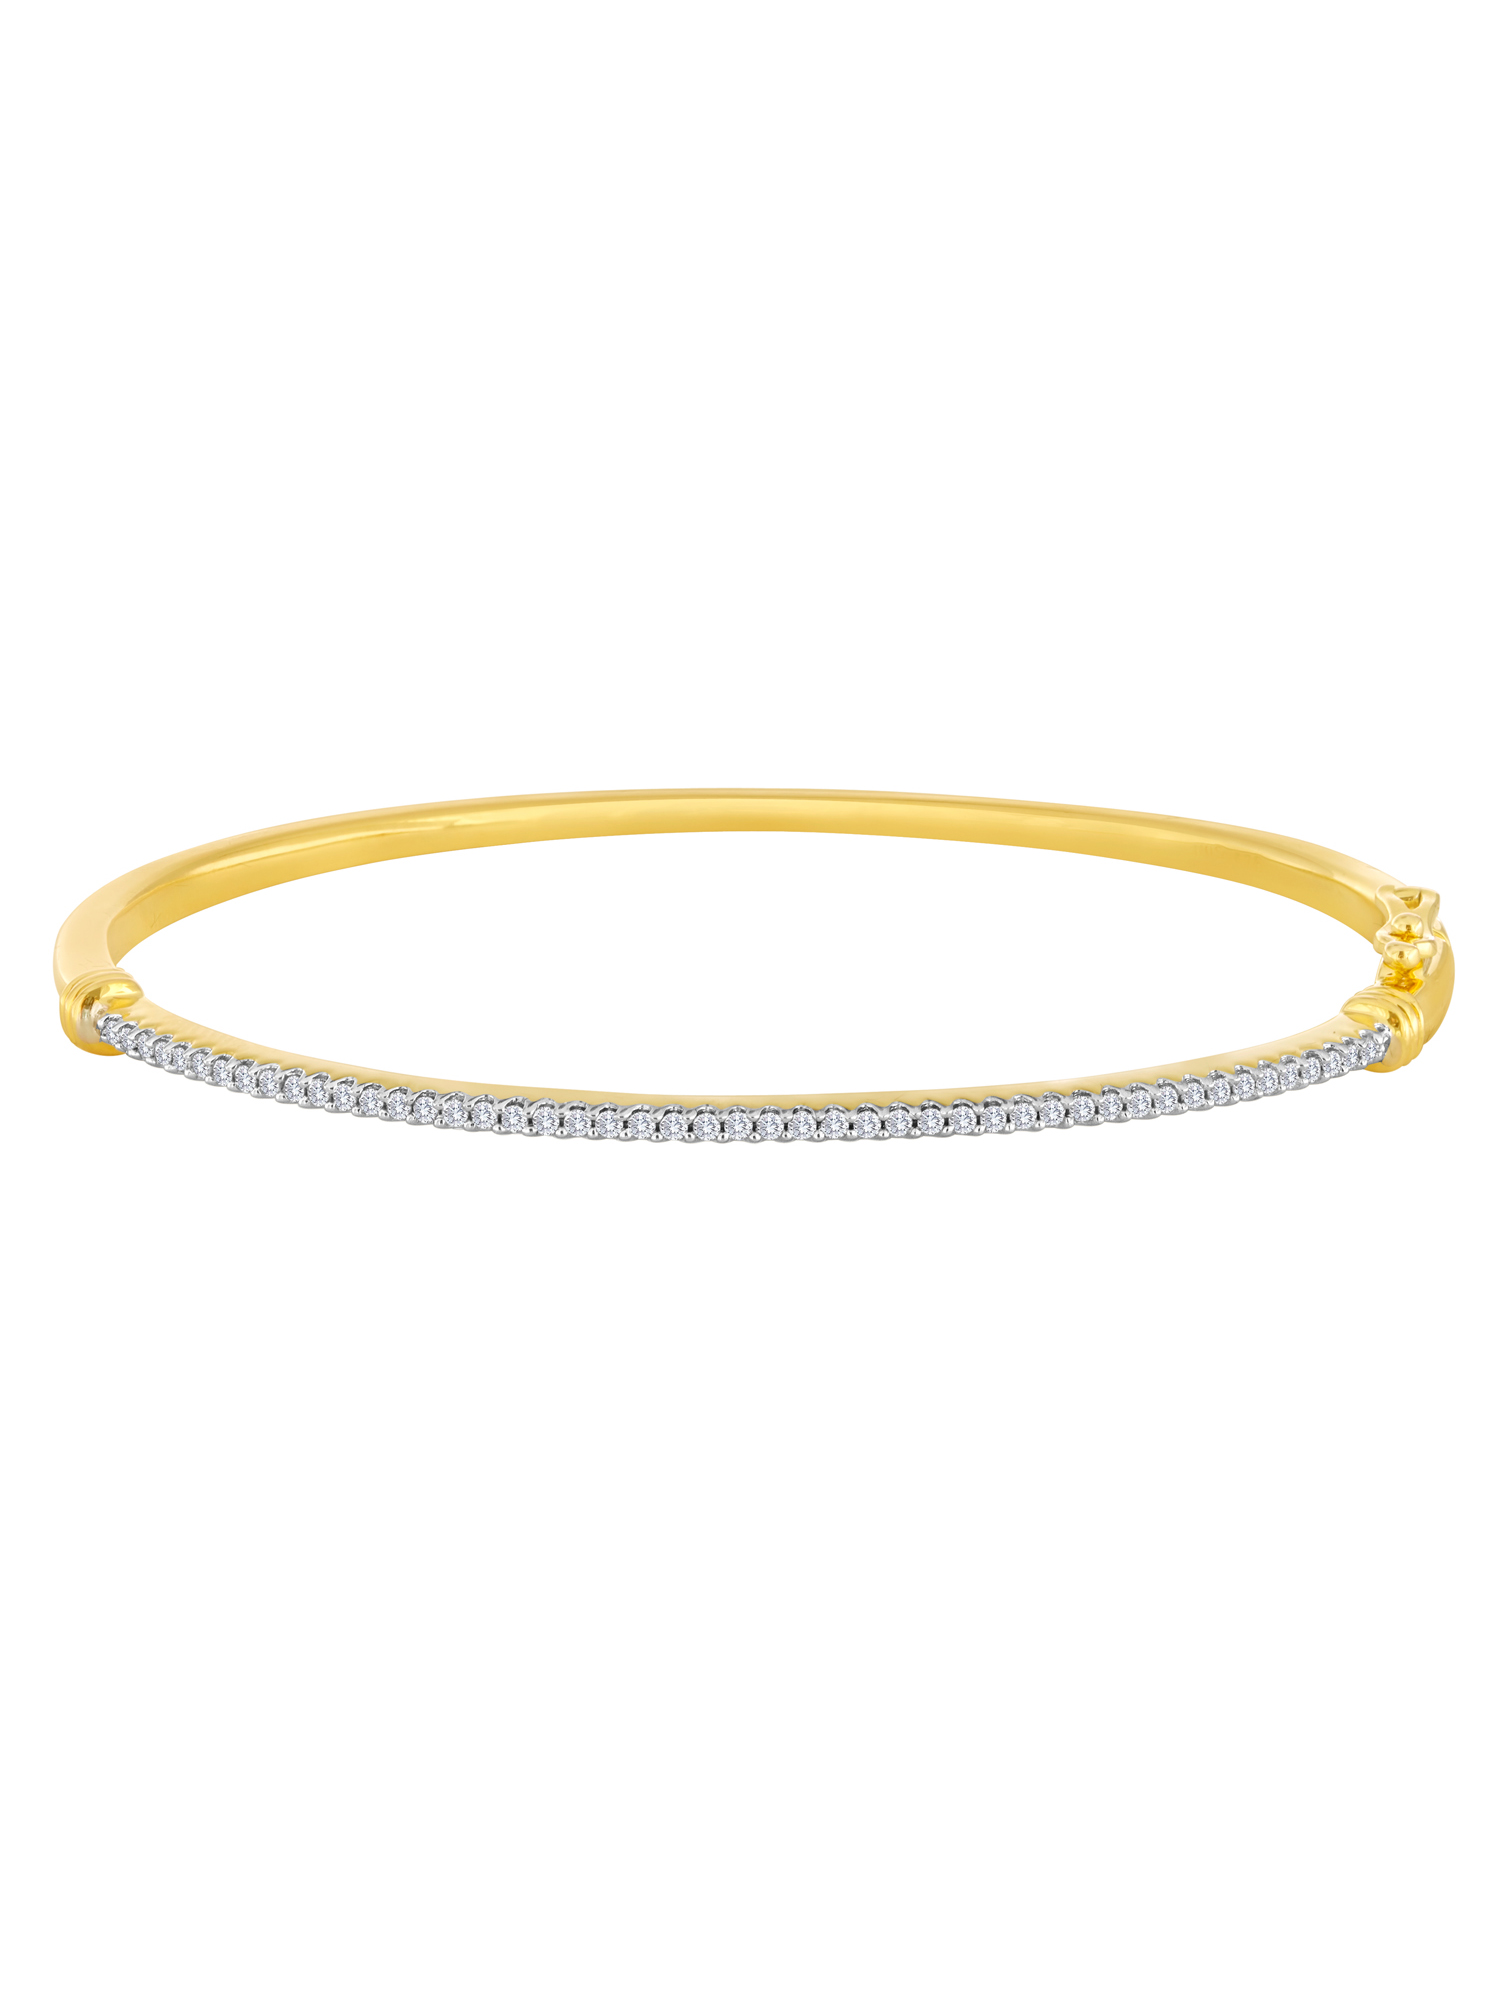 14kt Yellow Gold over Sterling Silver 1/2 Carat T.W. Diamond Bangle, 7